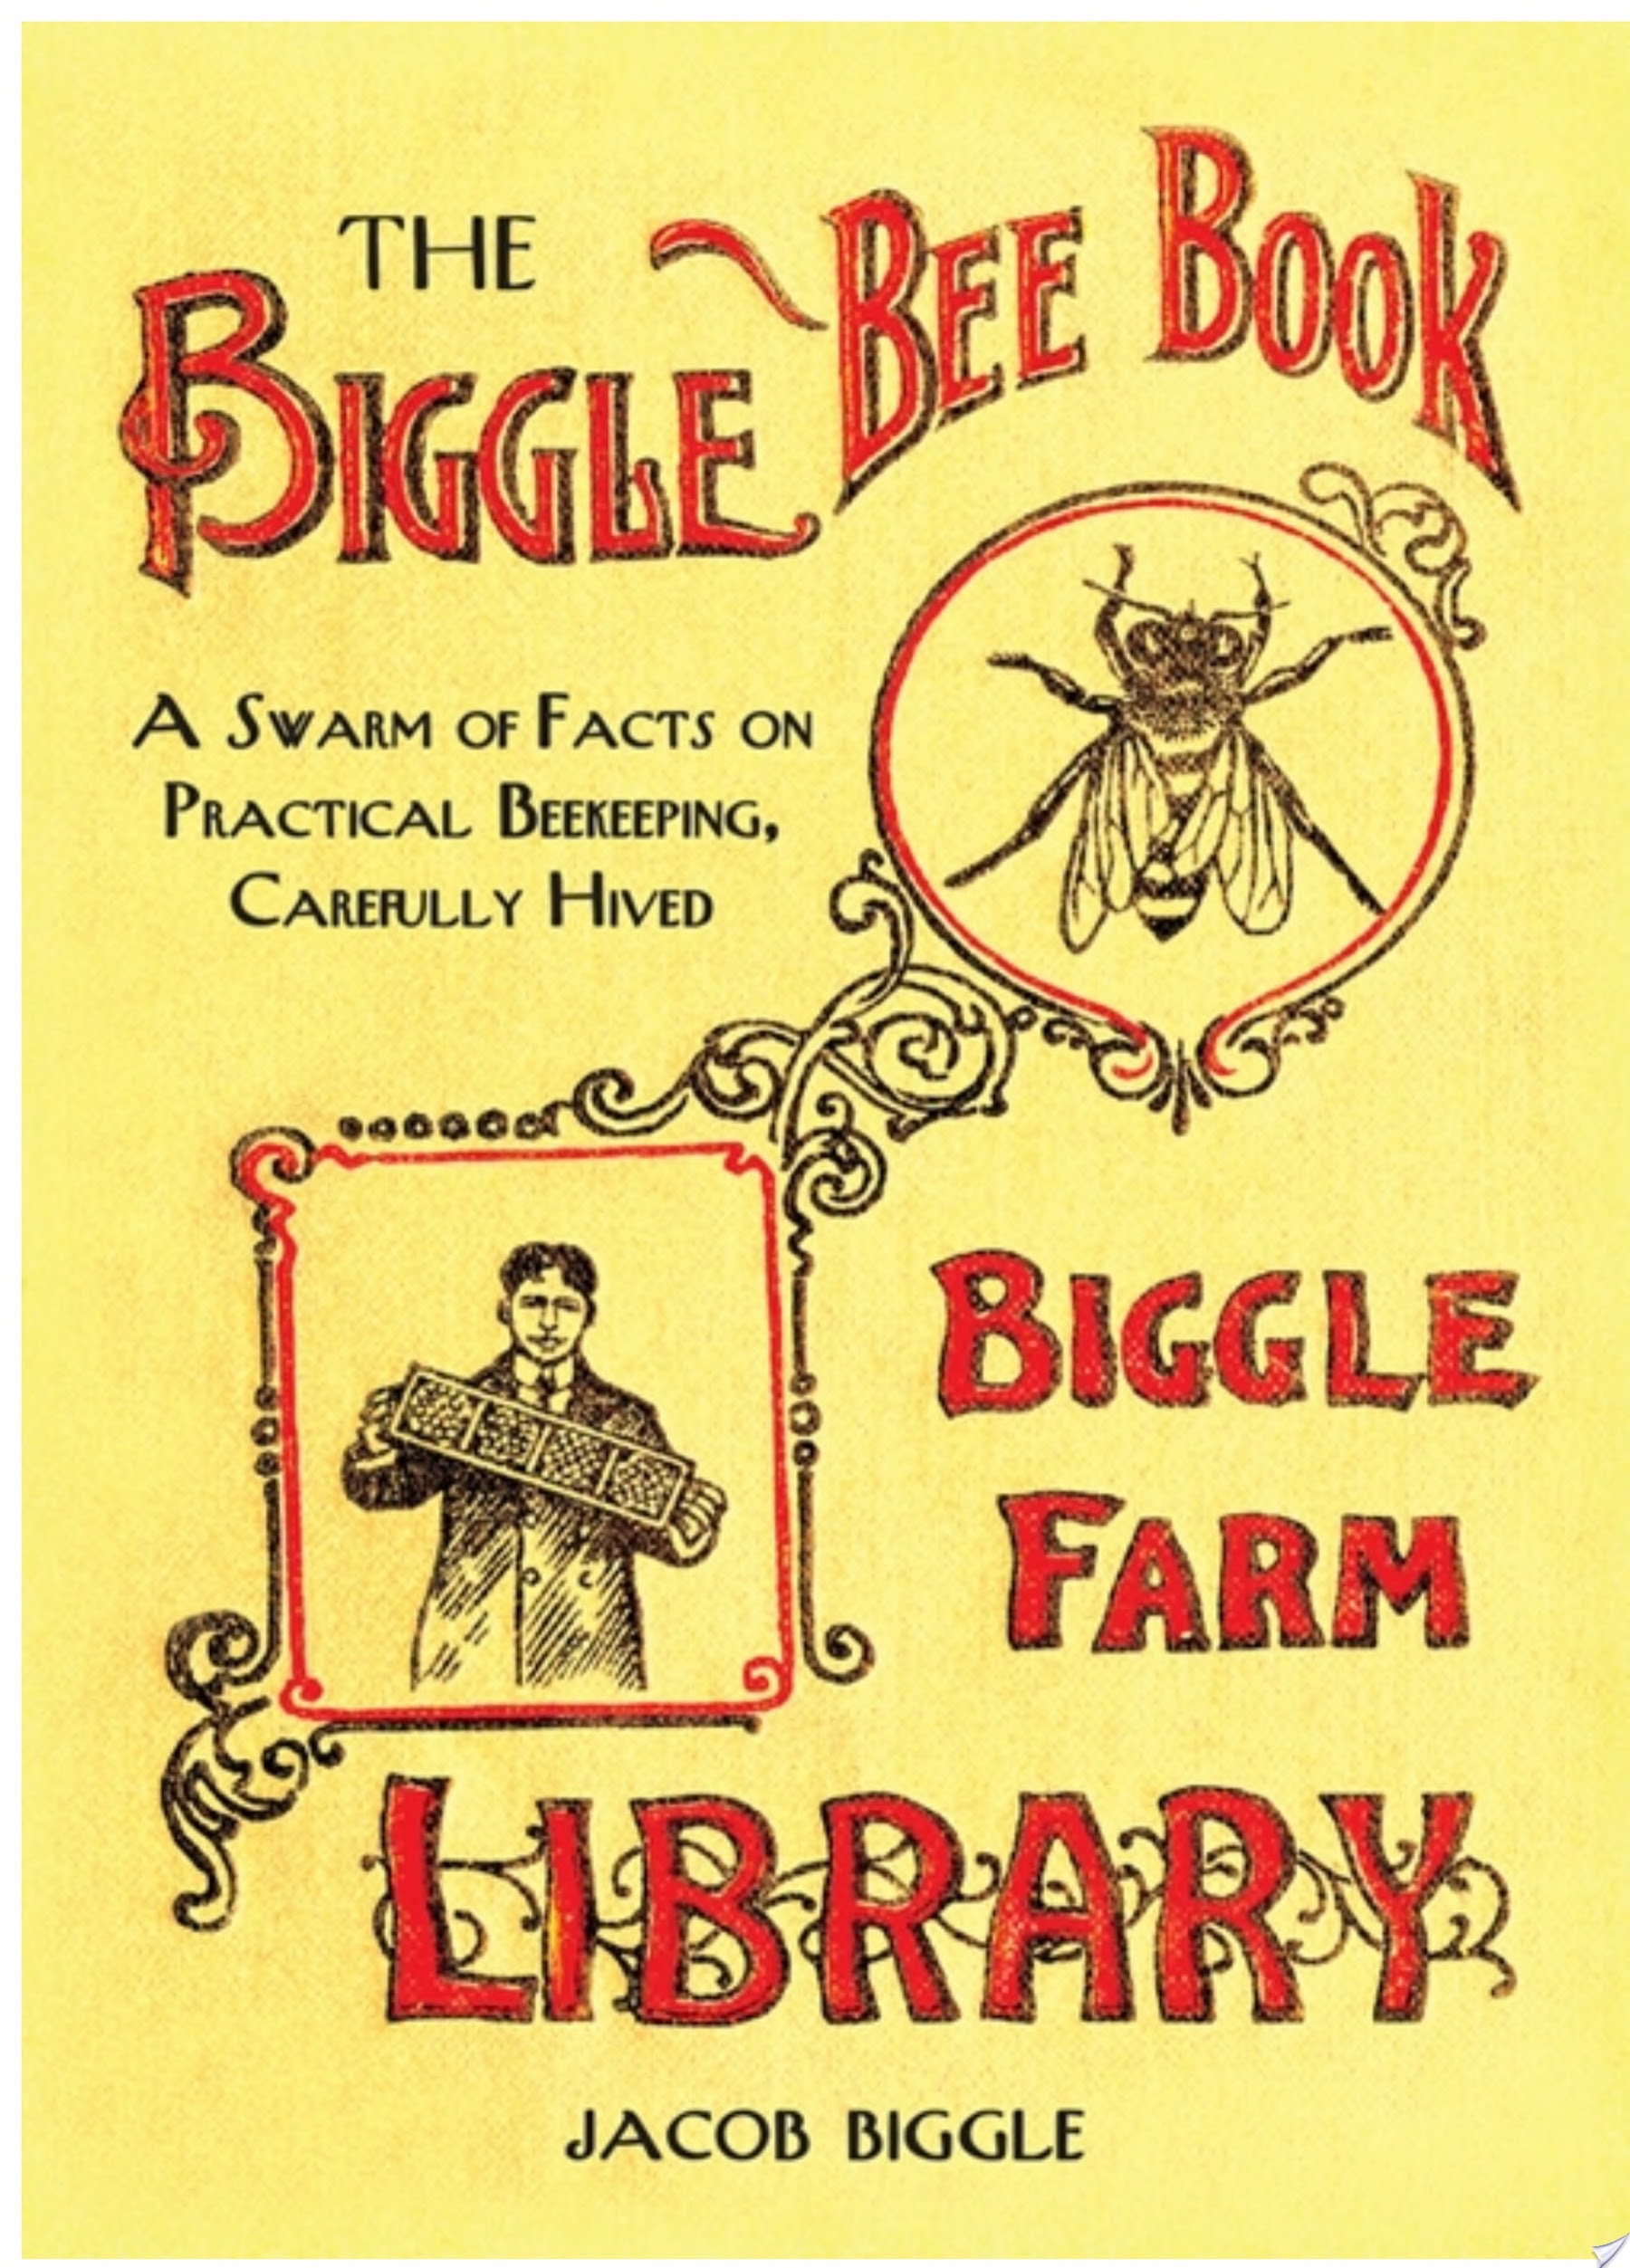 Biggle Bee Book.jpg